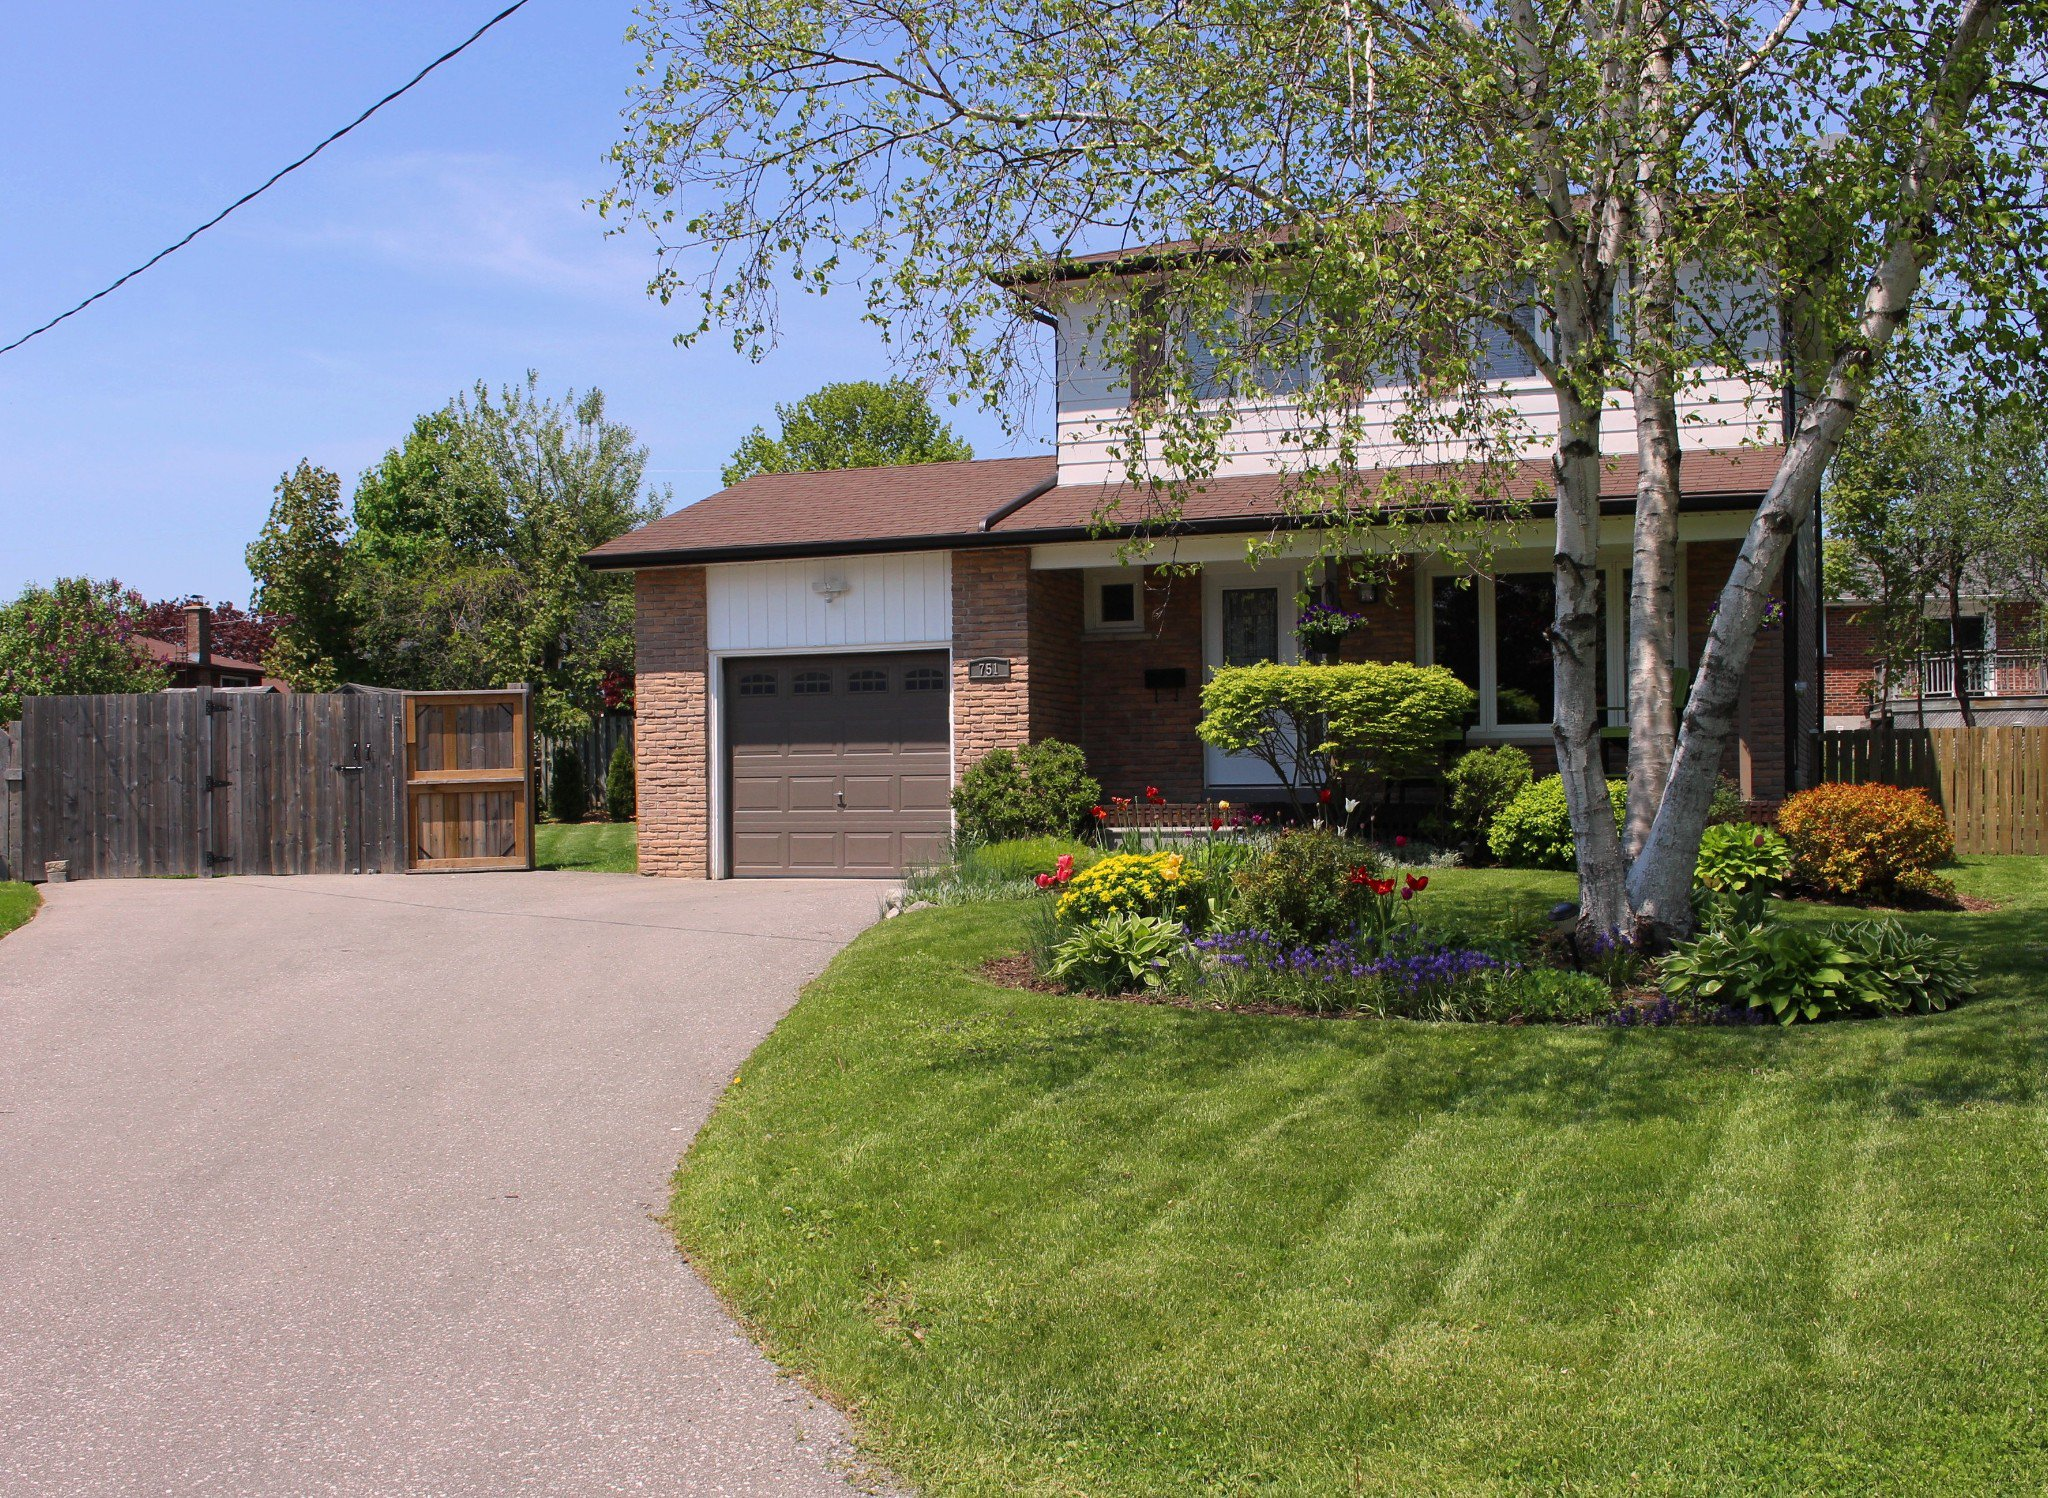 Photo 48: Photos: 751 Spragge Crescent in Cobourg: Residential Detached for sale : MLS®# 1291056